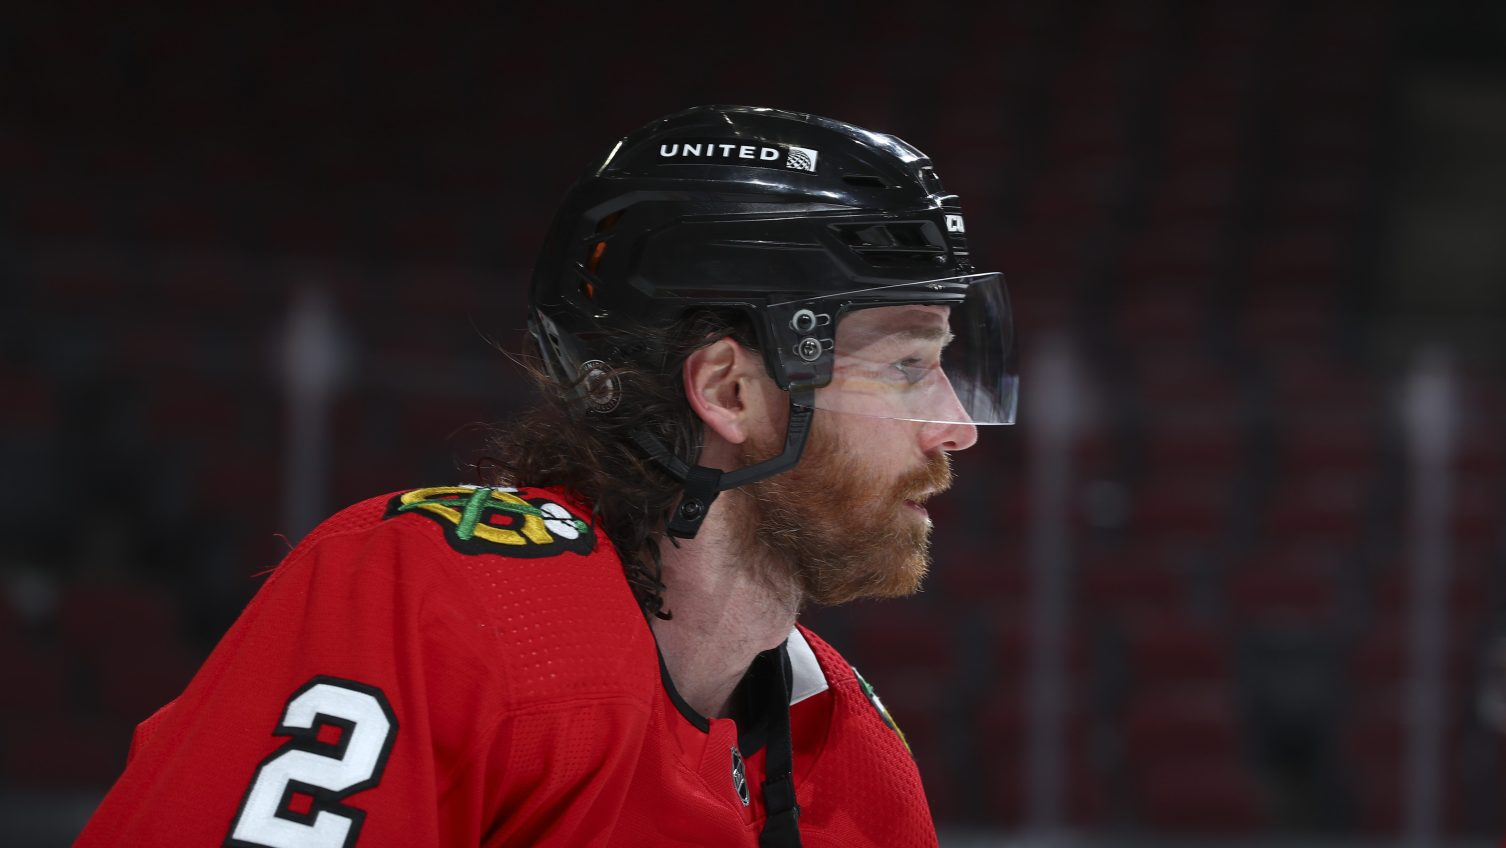 What is next for Blackhawks after Duncan Keith trade?